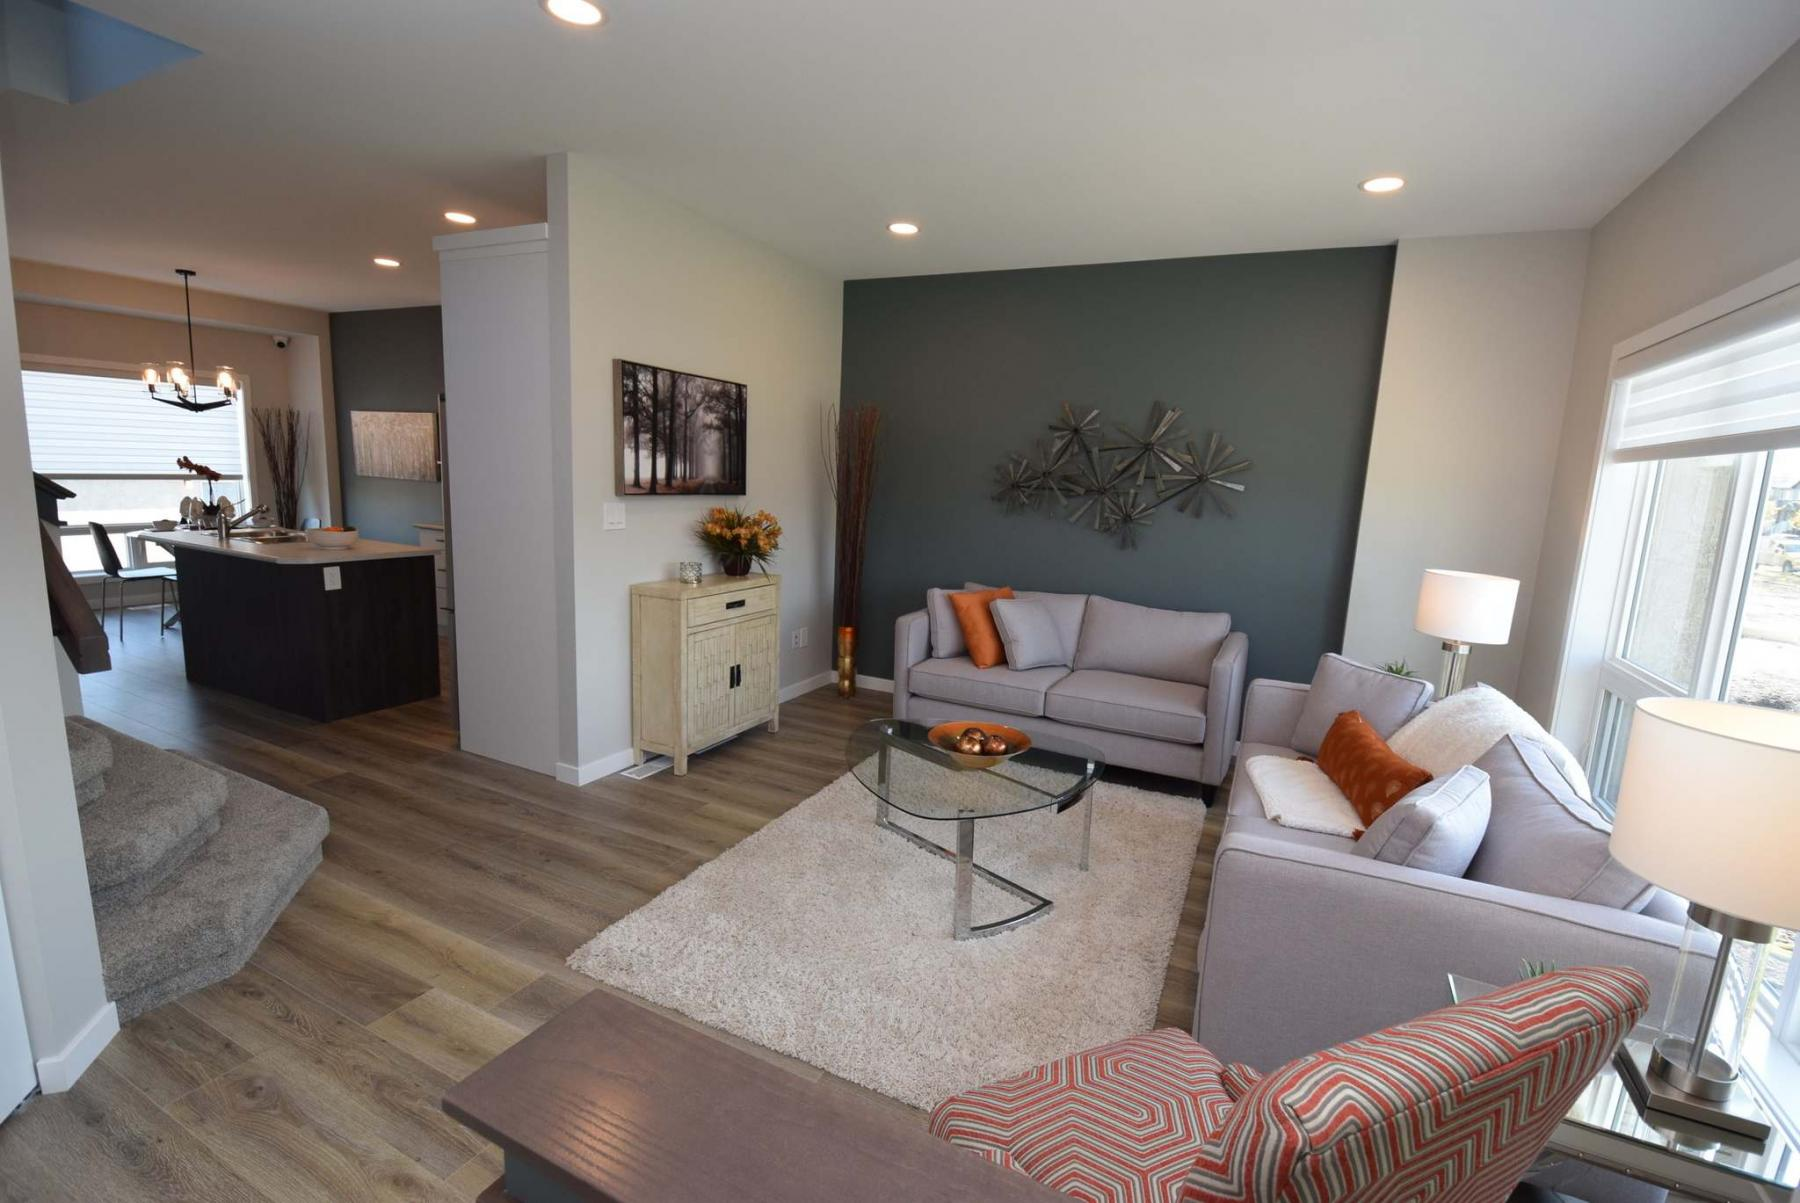 <p>Todd Lewys / Winnipeg Free Press</p><p>The family room offers plenty of space for furniture, with a picture window to provide light.</p>